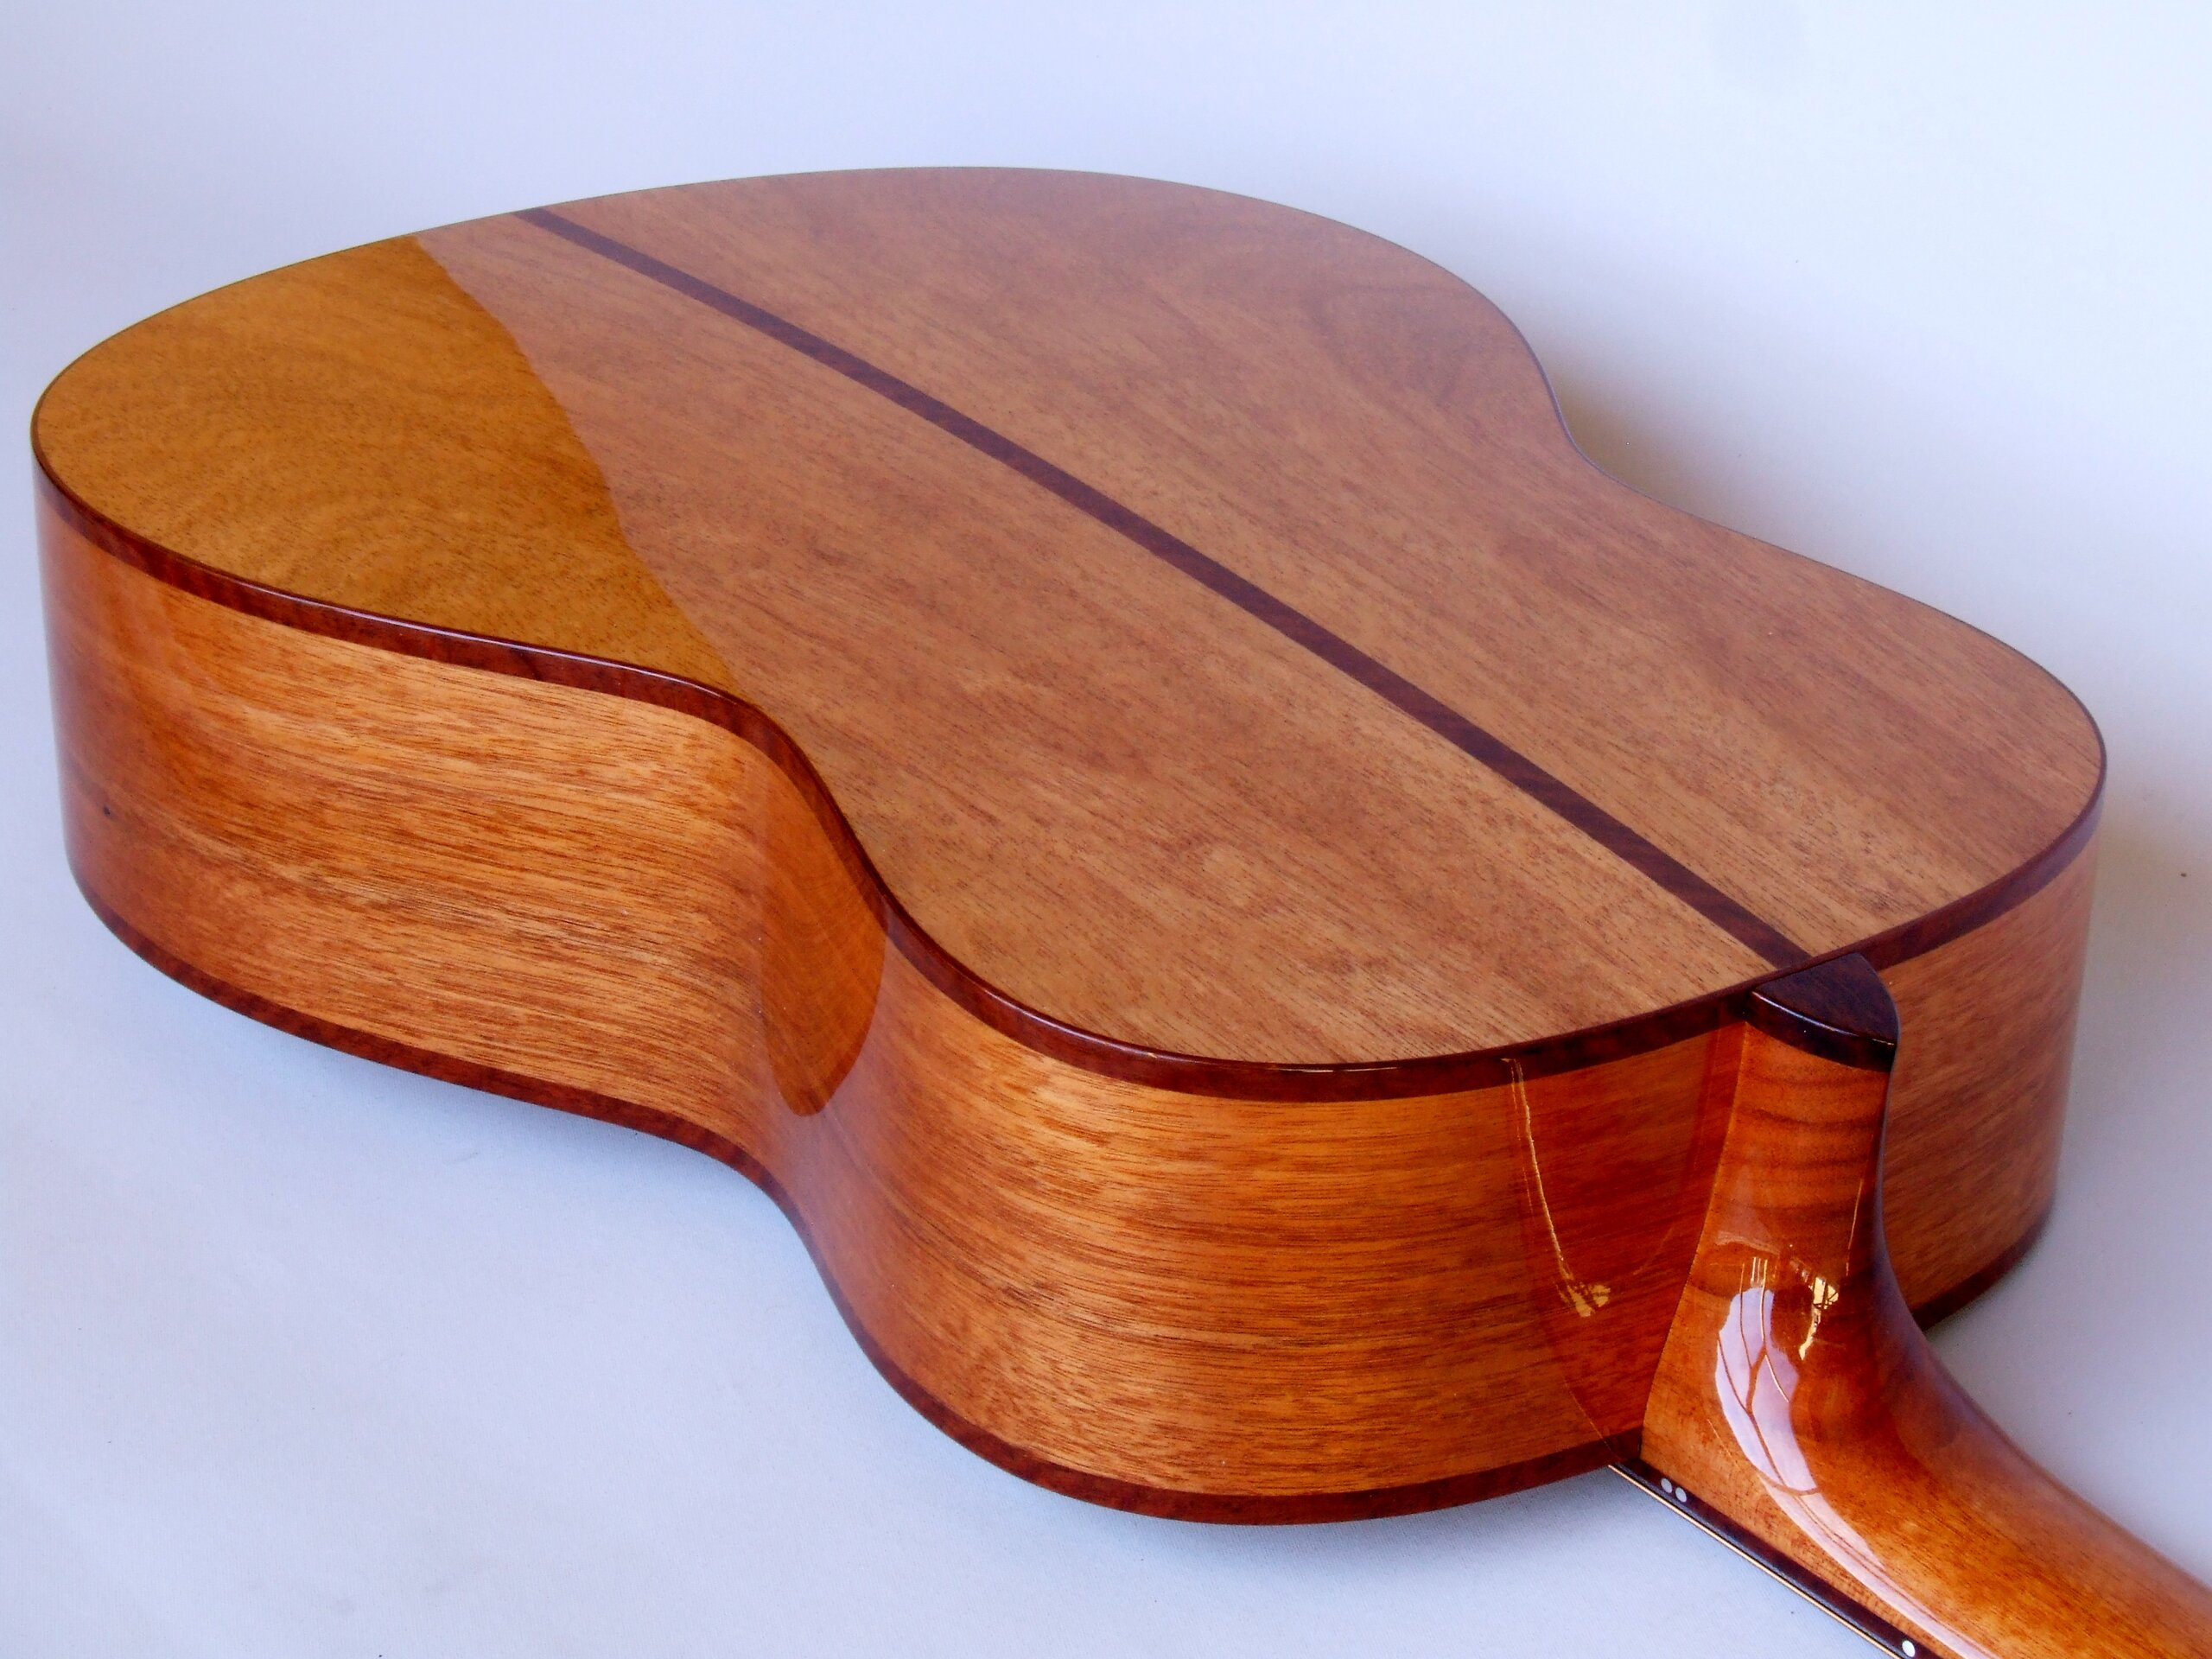 Figured Jarrah decorating the back and sides of the Shed guitar